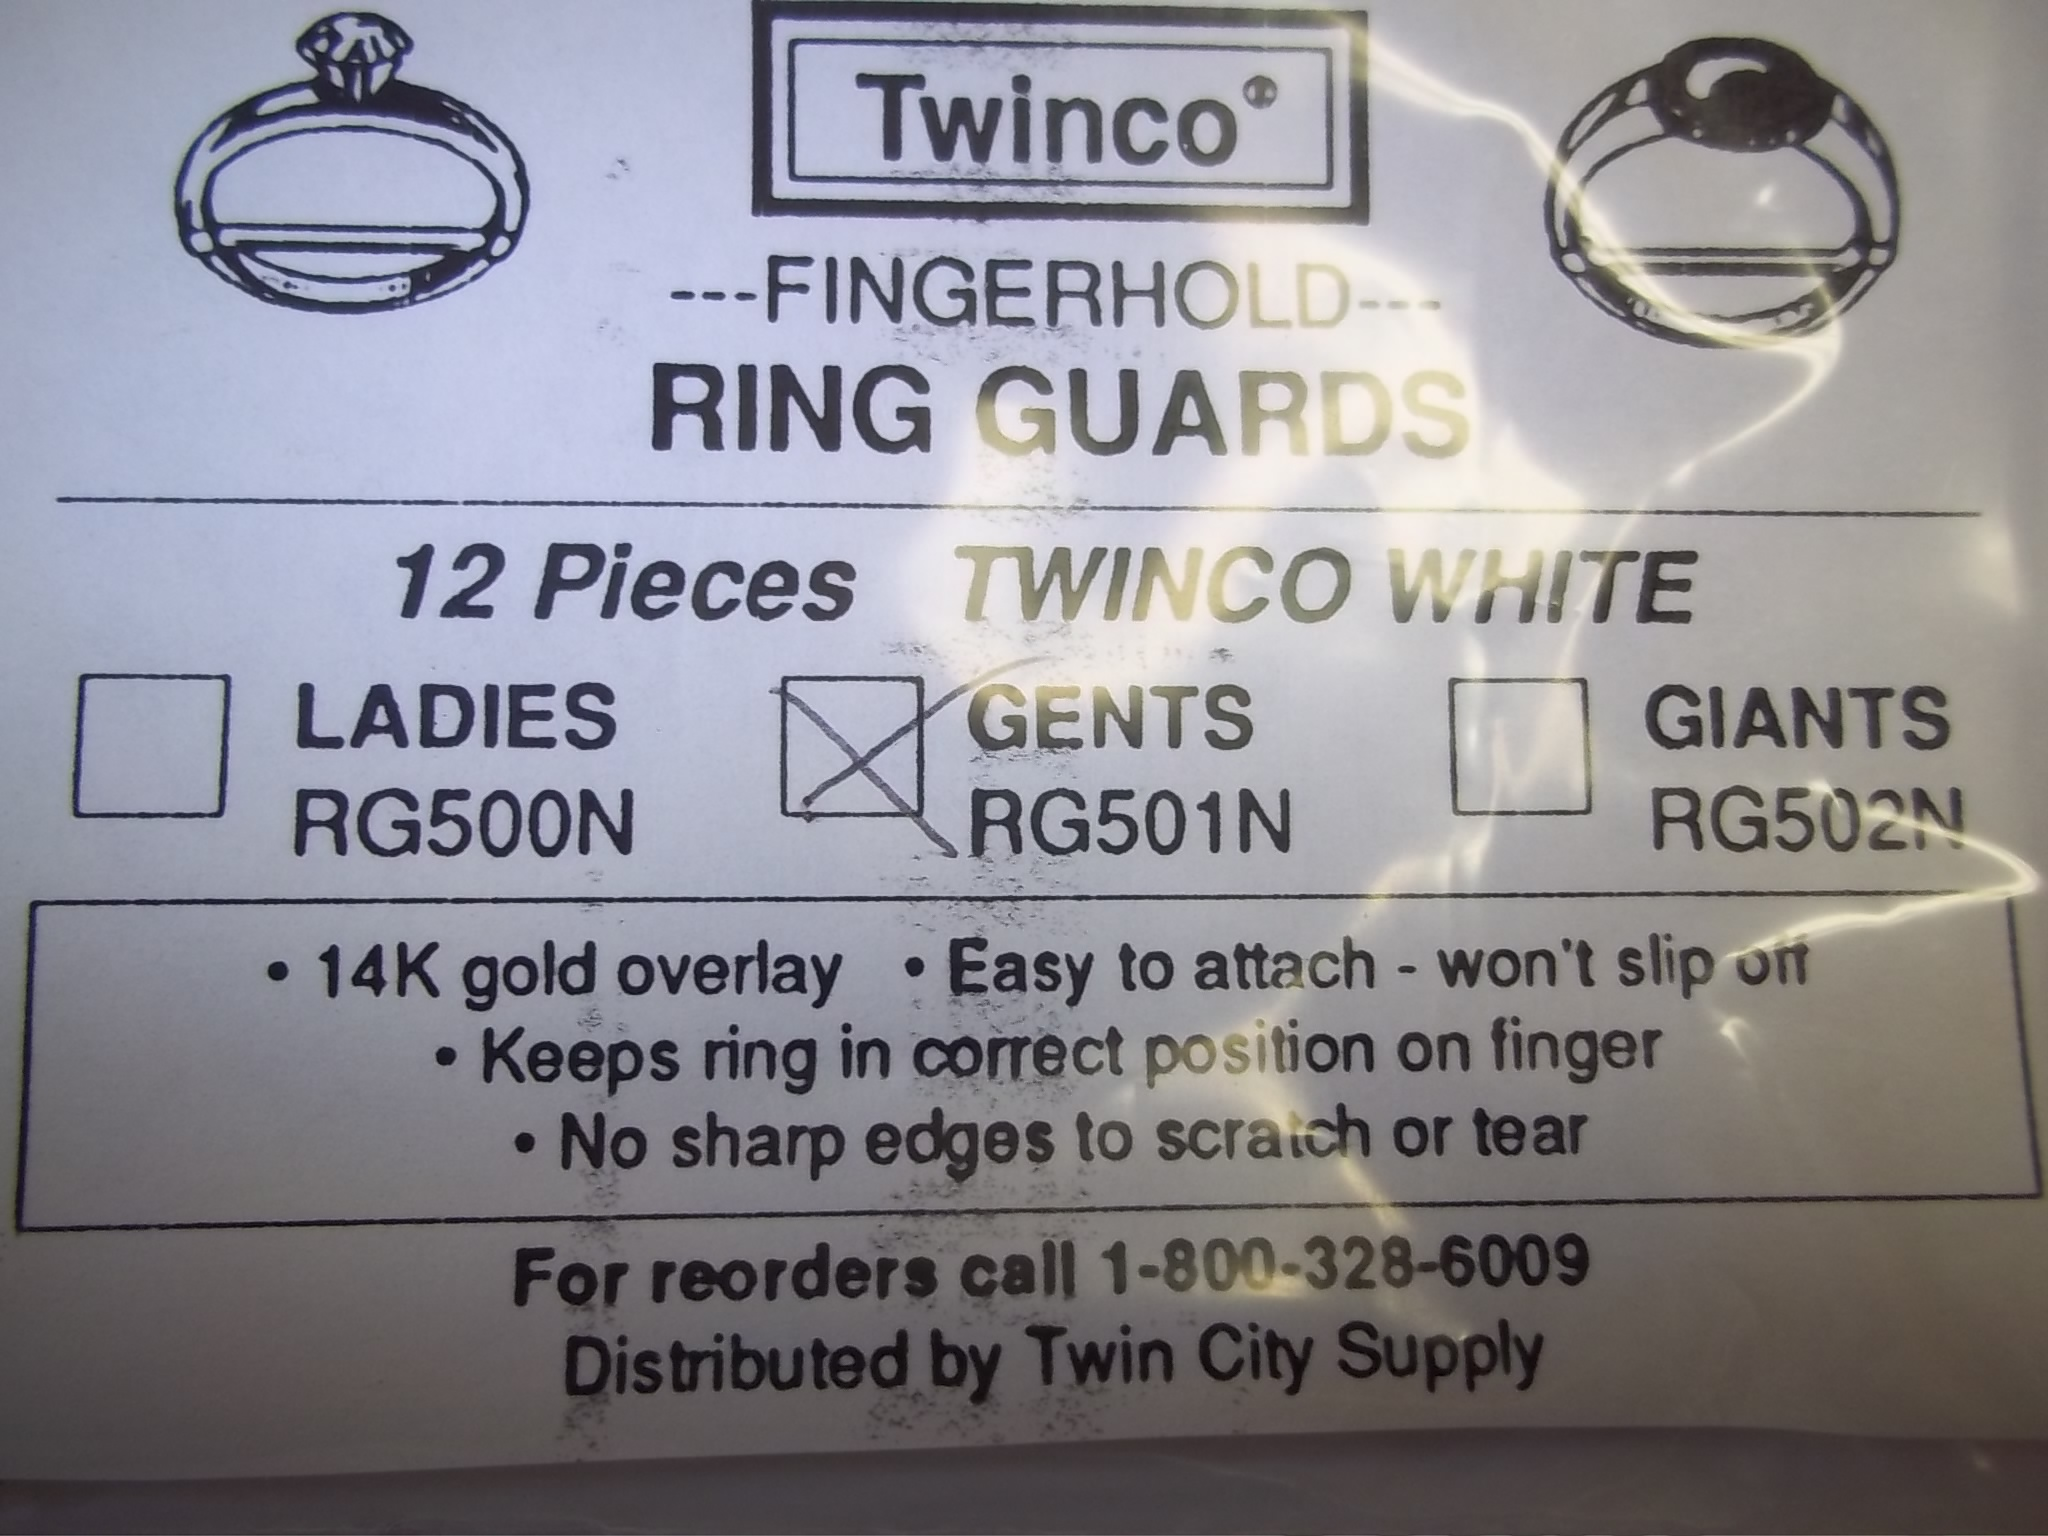 RG501N Twinco --Fingerhold-- Ring Guards-- Gents White